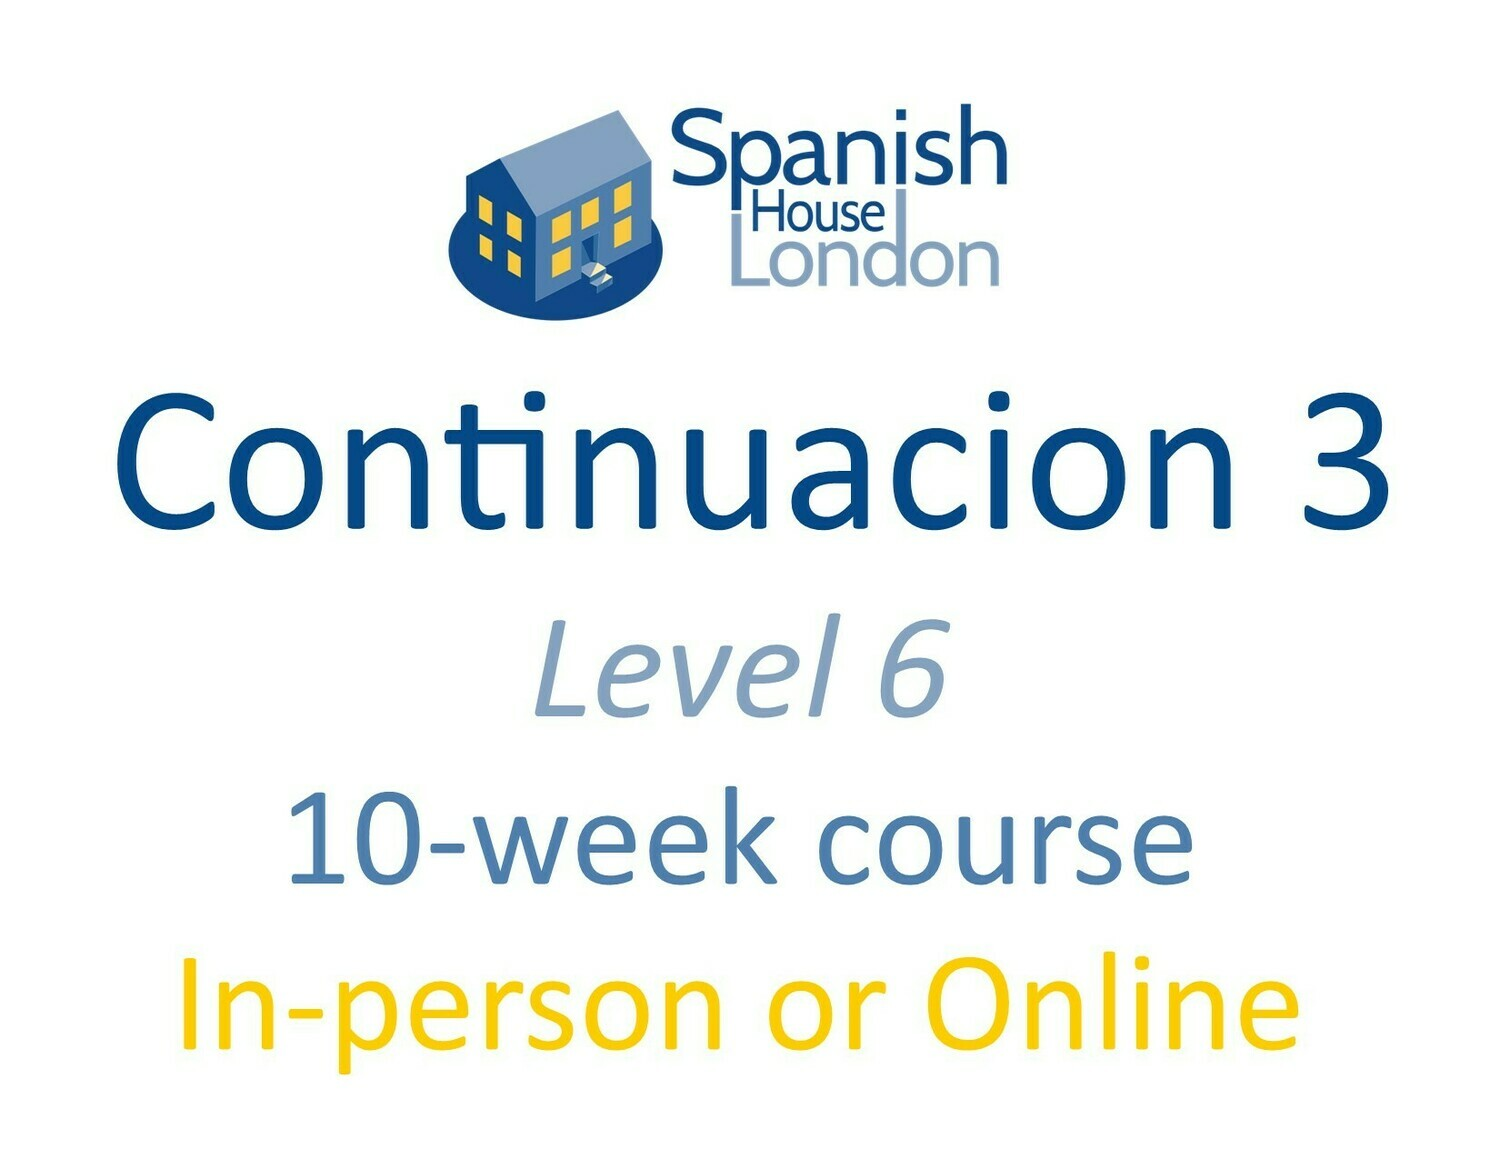 Continuacion 3 Course starting on 21st September at 7.30pm in Clapham North